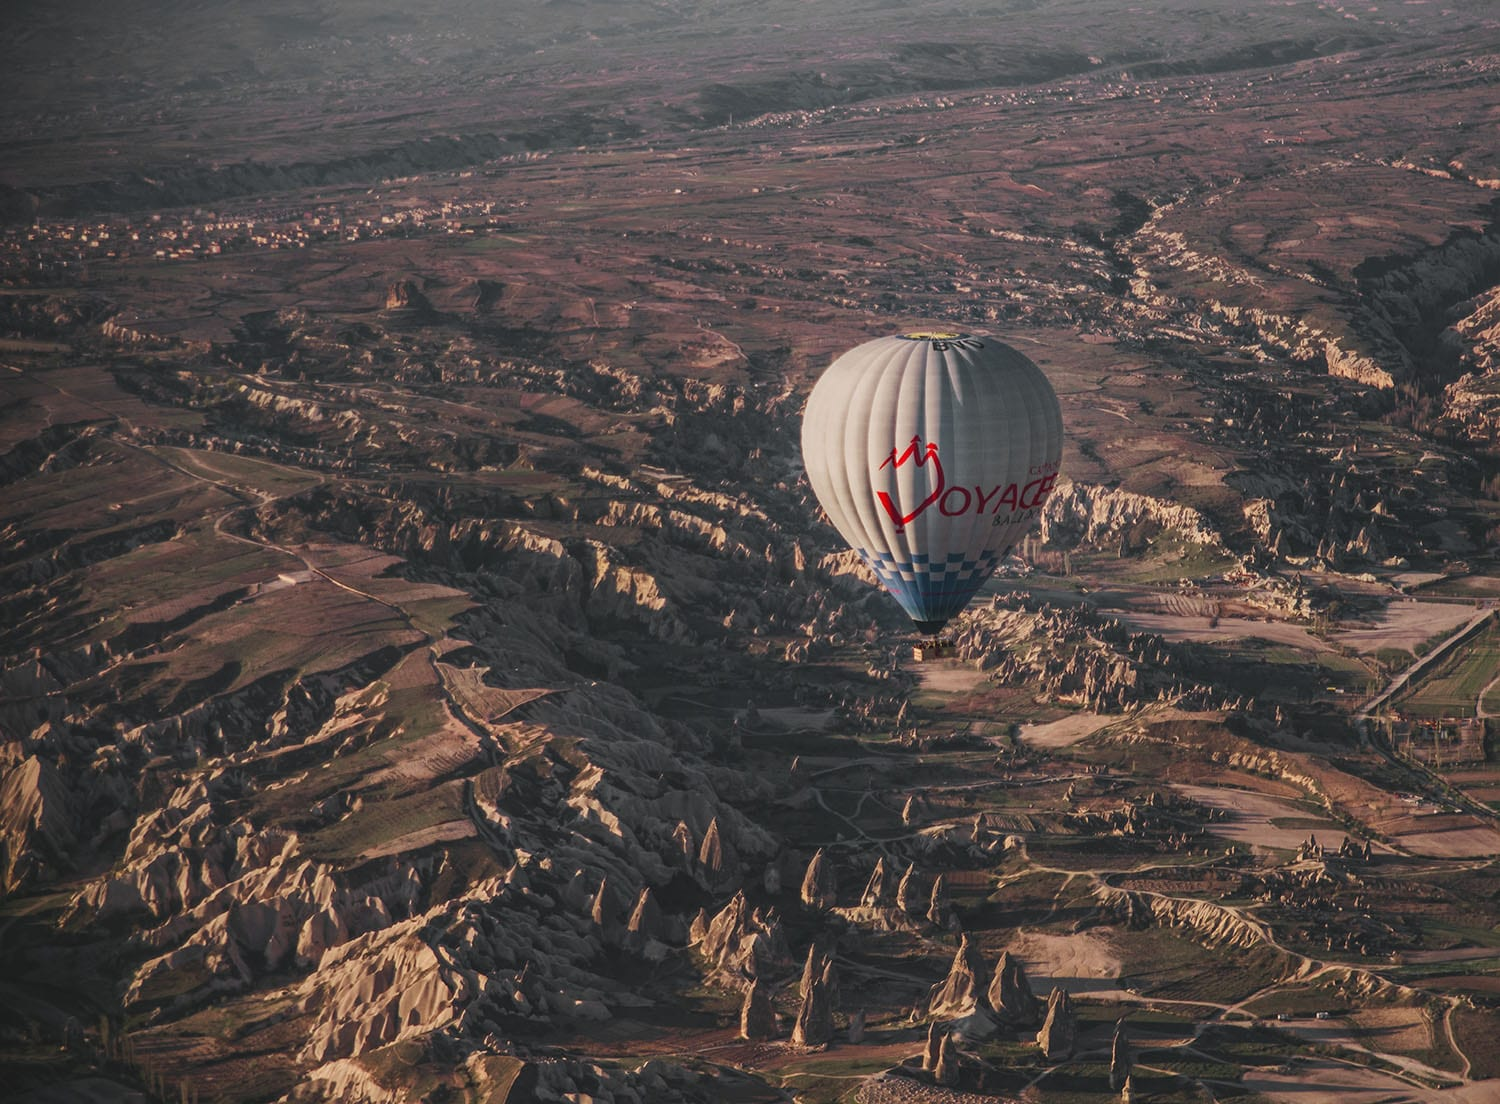 Close up of single hot air balloon in Cappadocia, Turkey